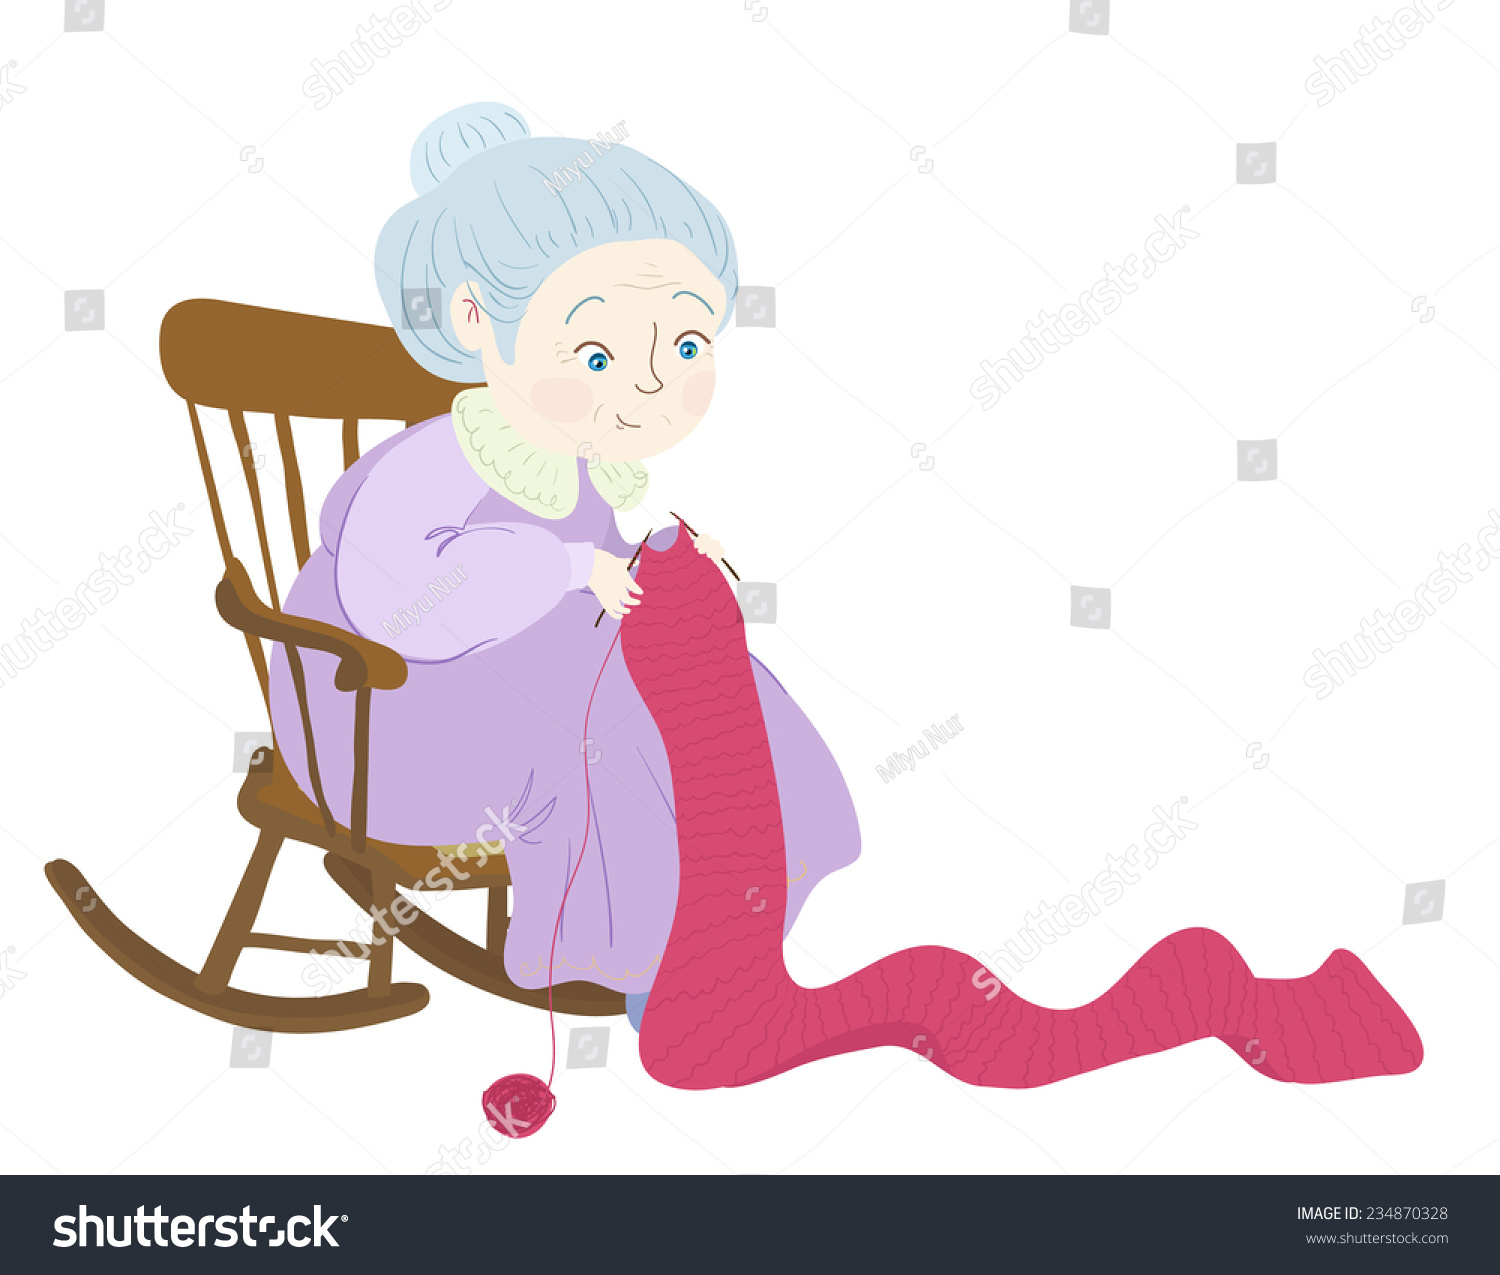 old lady chair images of covers for wedding grandma knitting her rockingchair stock vector 234870328